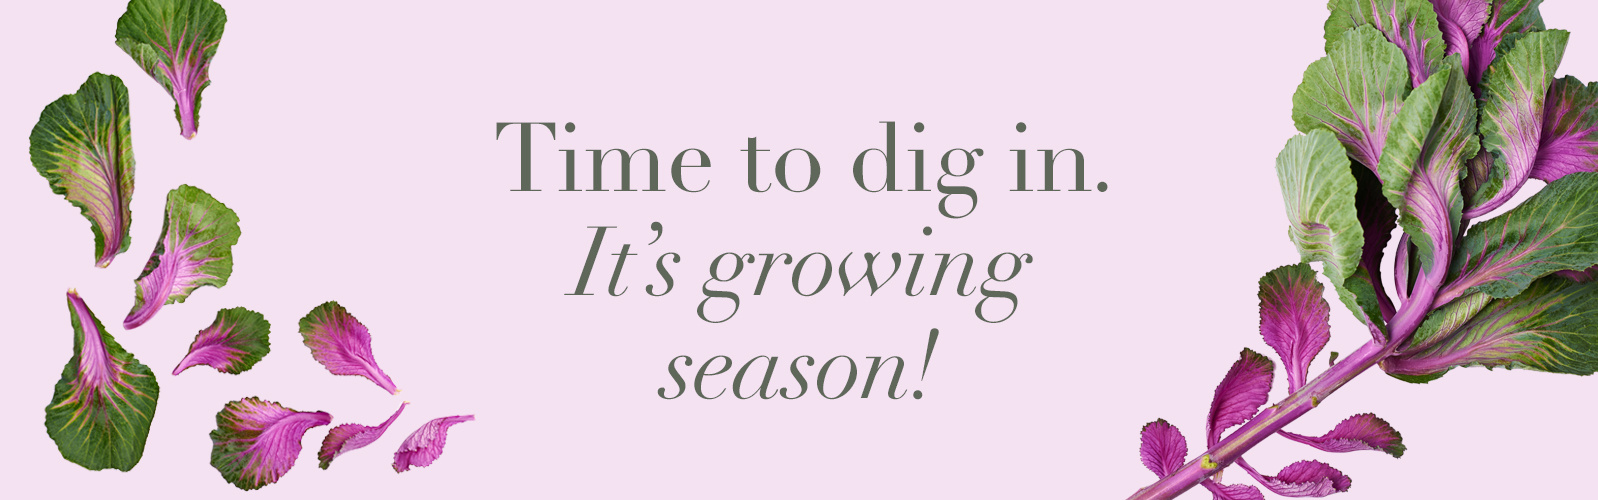 Time to dig in. It's growing season!